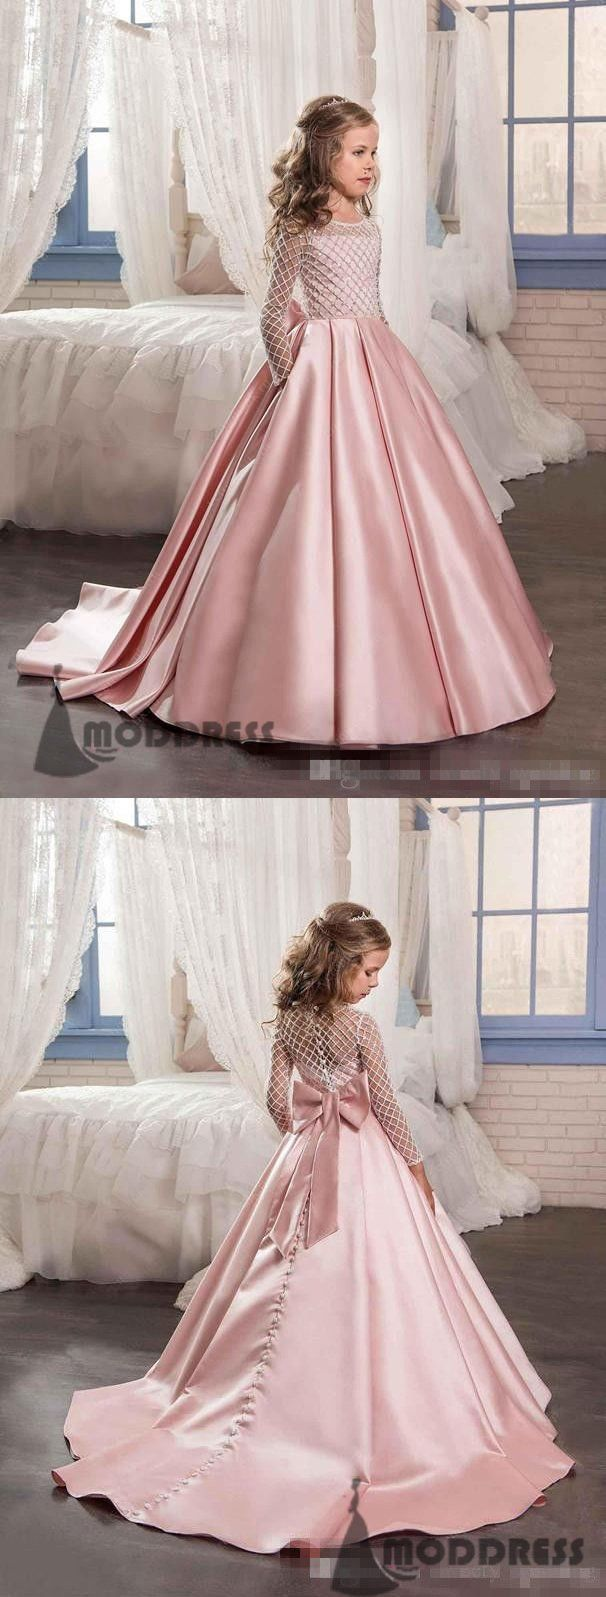 Flower girl dresses princess pageant first communion dresses kids